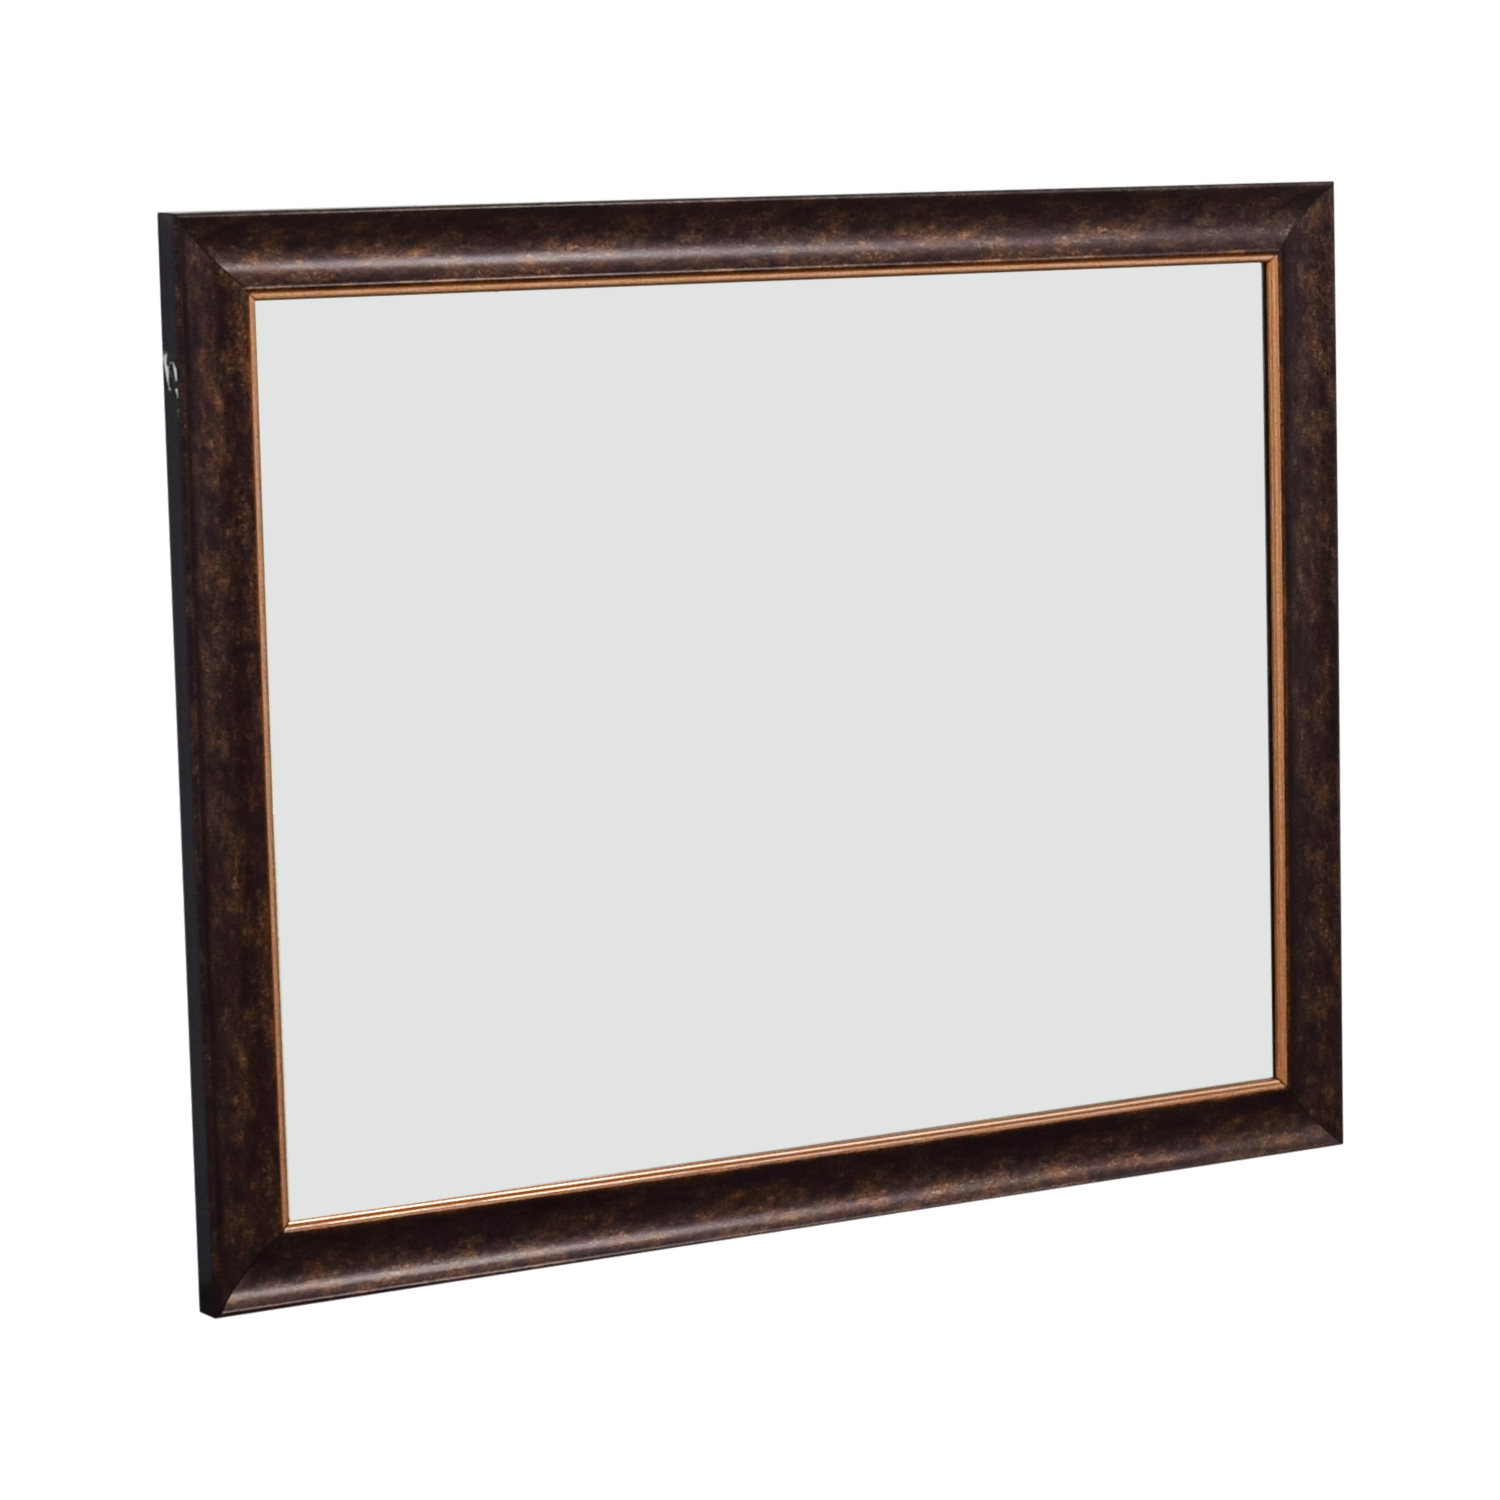 Bombay and Company Rustic Beveled Mirror sale